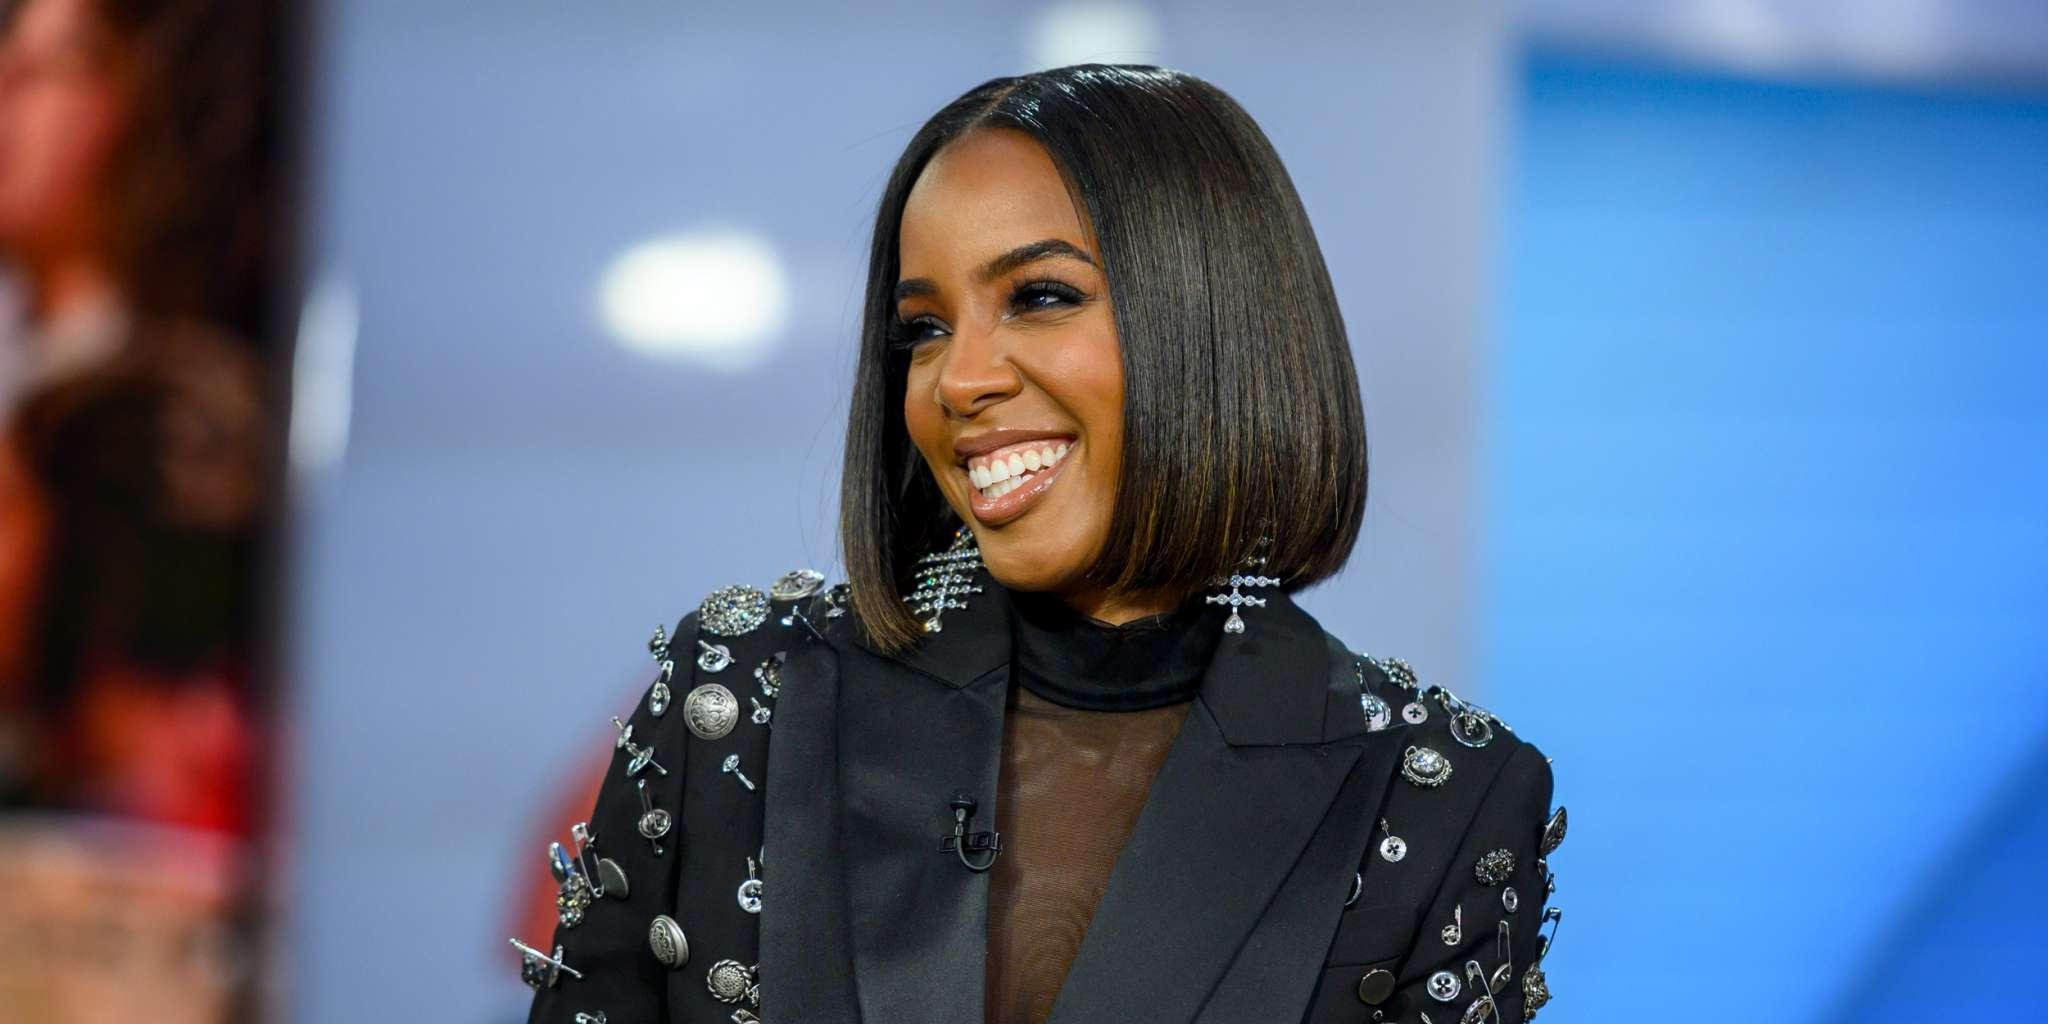 Kelly Rowland Stuns In Black Swimsuit Only 5 Months After Having 2nd Child - Pic!